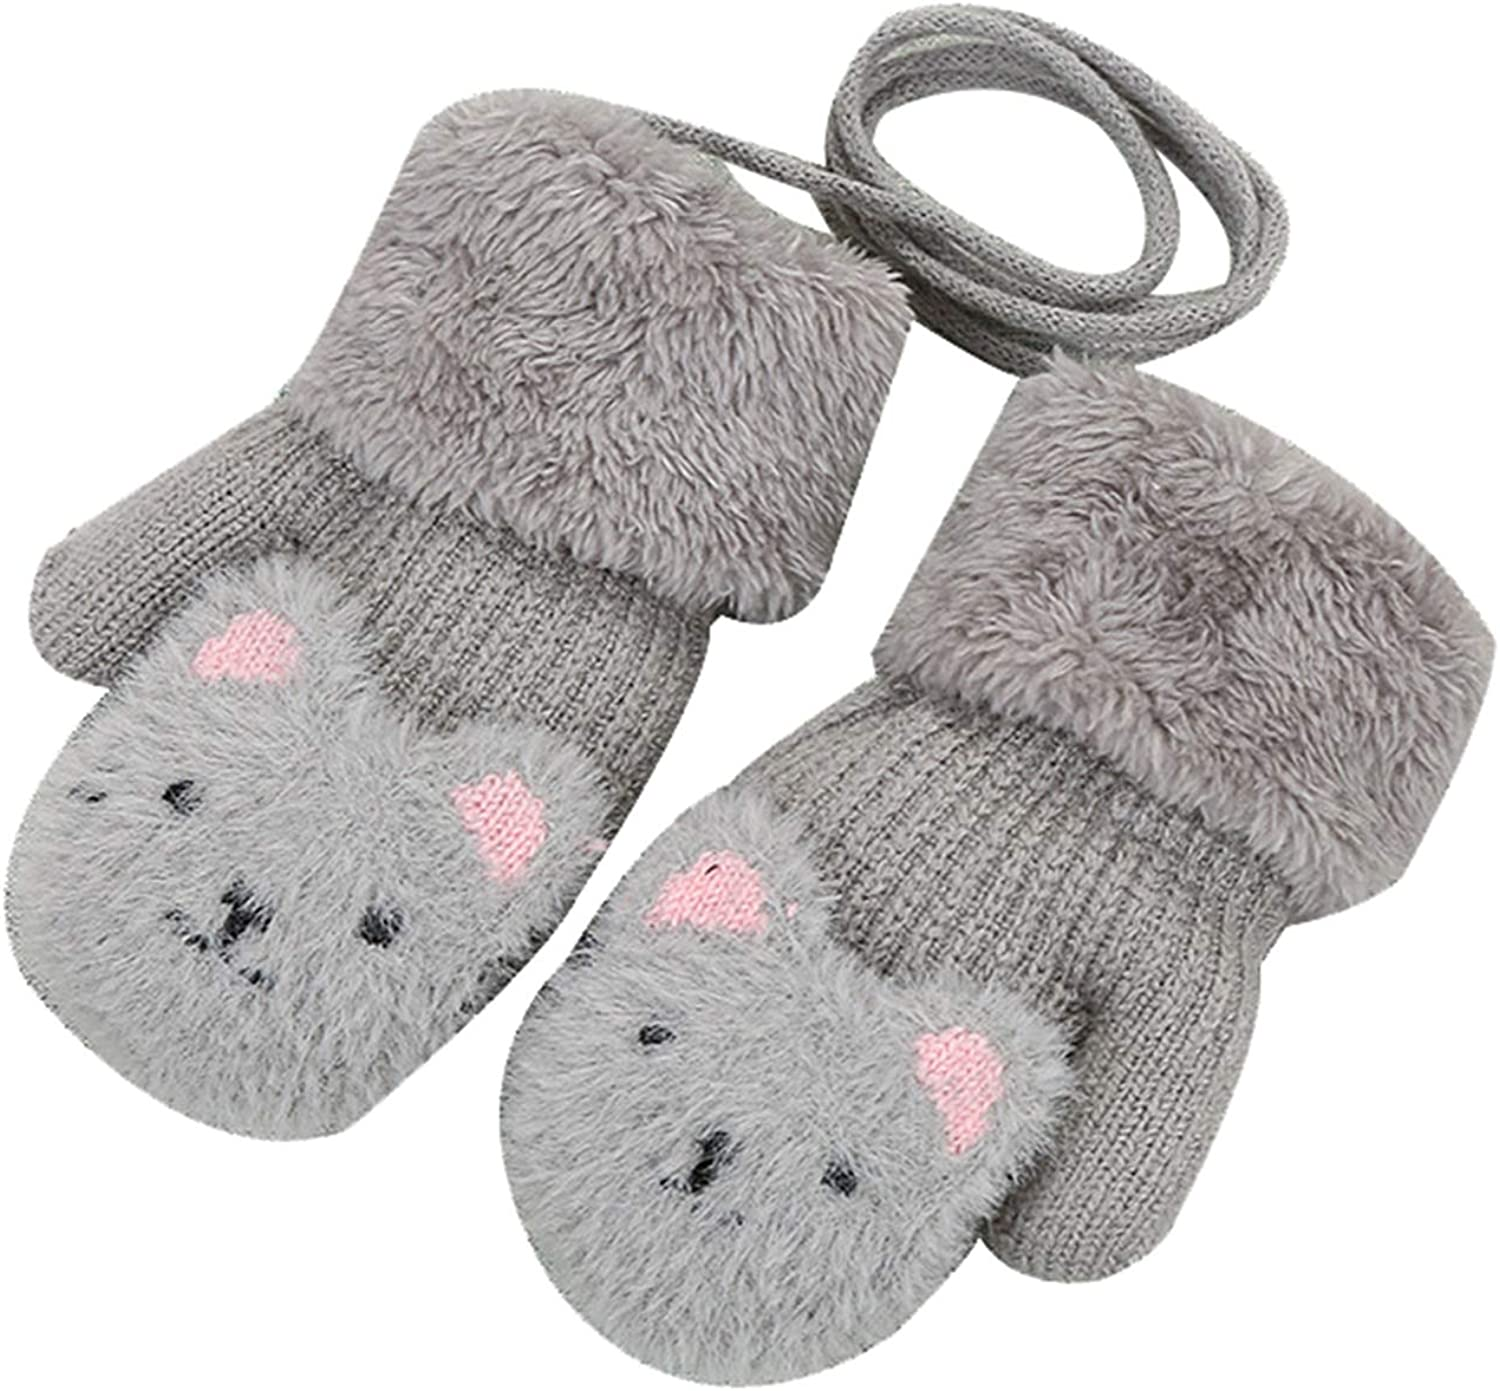 2-7 Years Kids Mittens, Bear 2-layer Knitted Thermal Girls Winter Gloves for Holiday Season